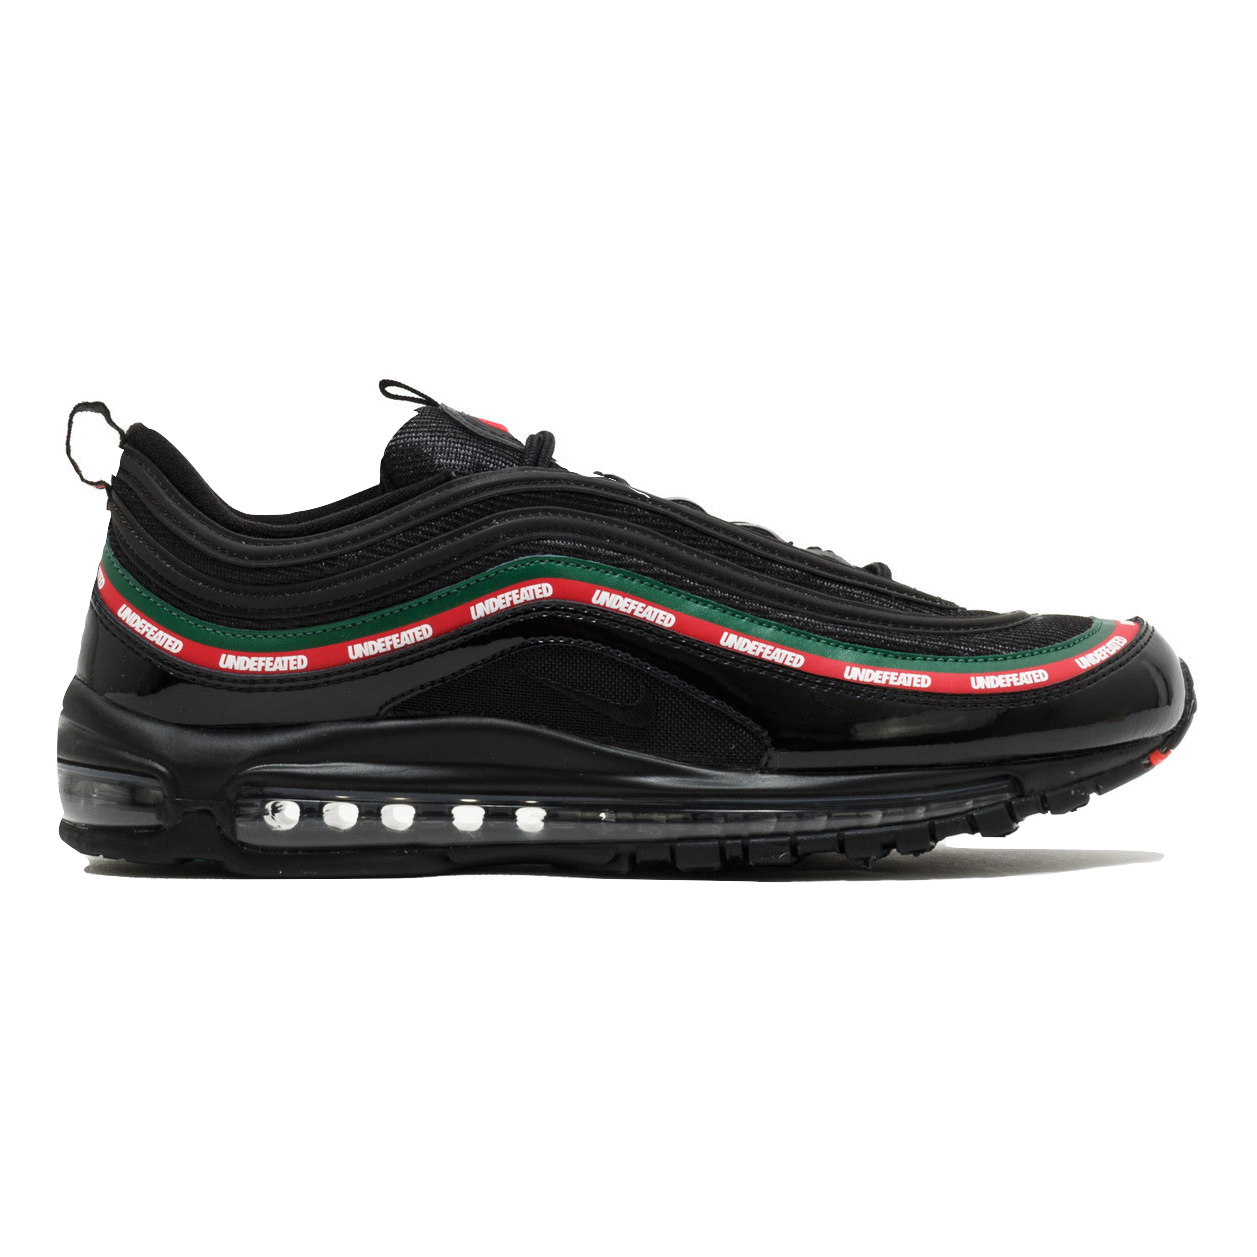 Nike Air Max 97 OG/Undftd - Black - Used